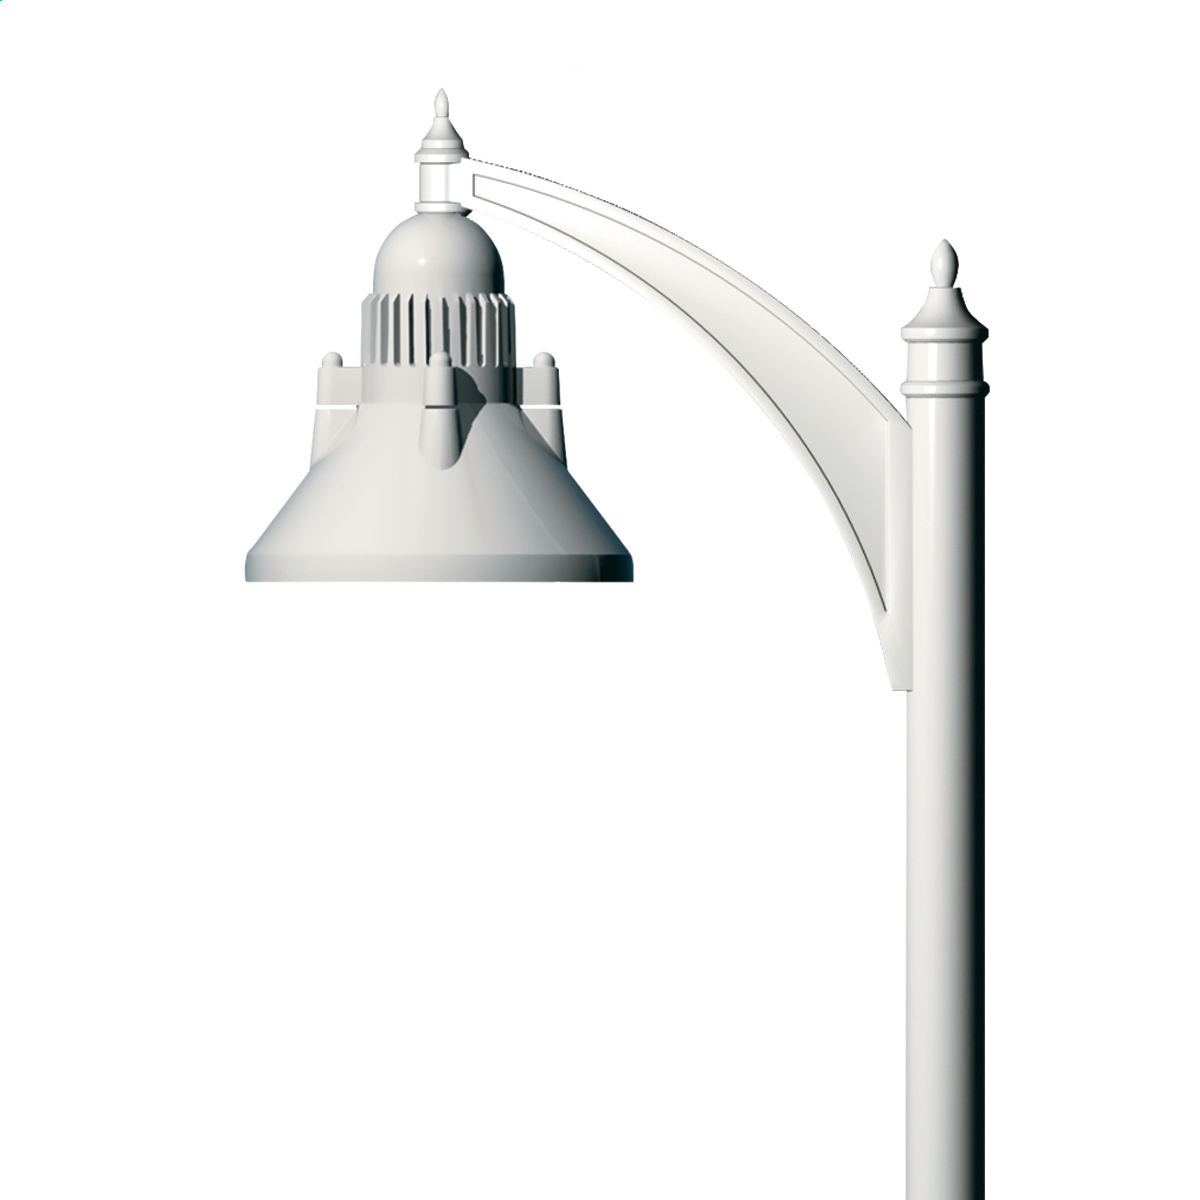 Swept Cast Arm  Poles  Arms  Commercial Outdoor